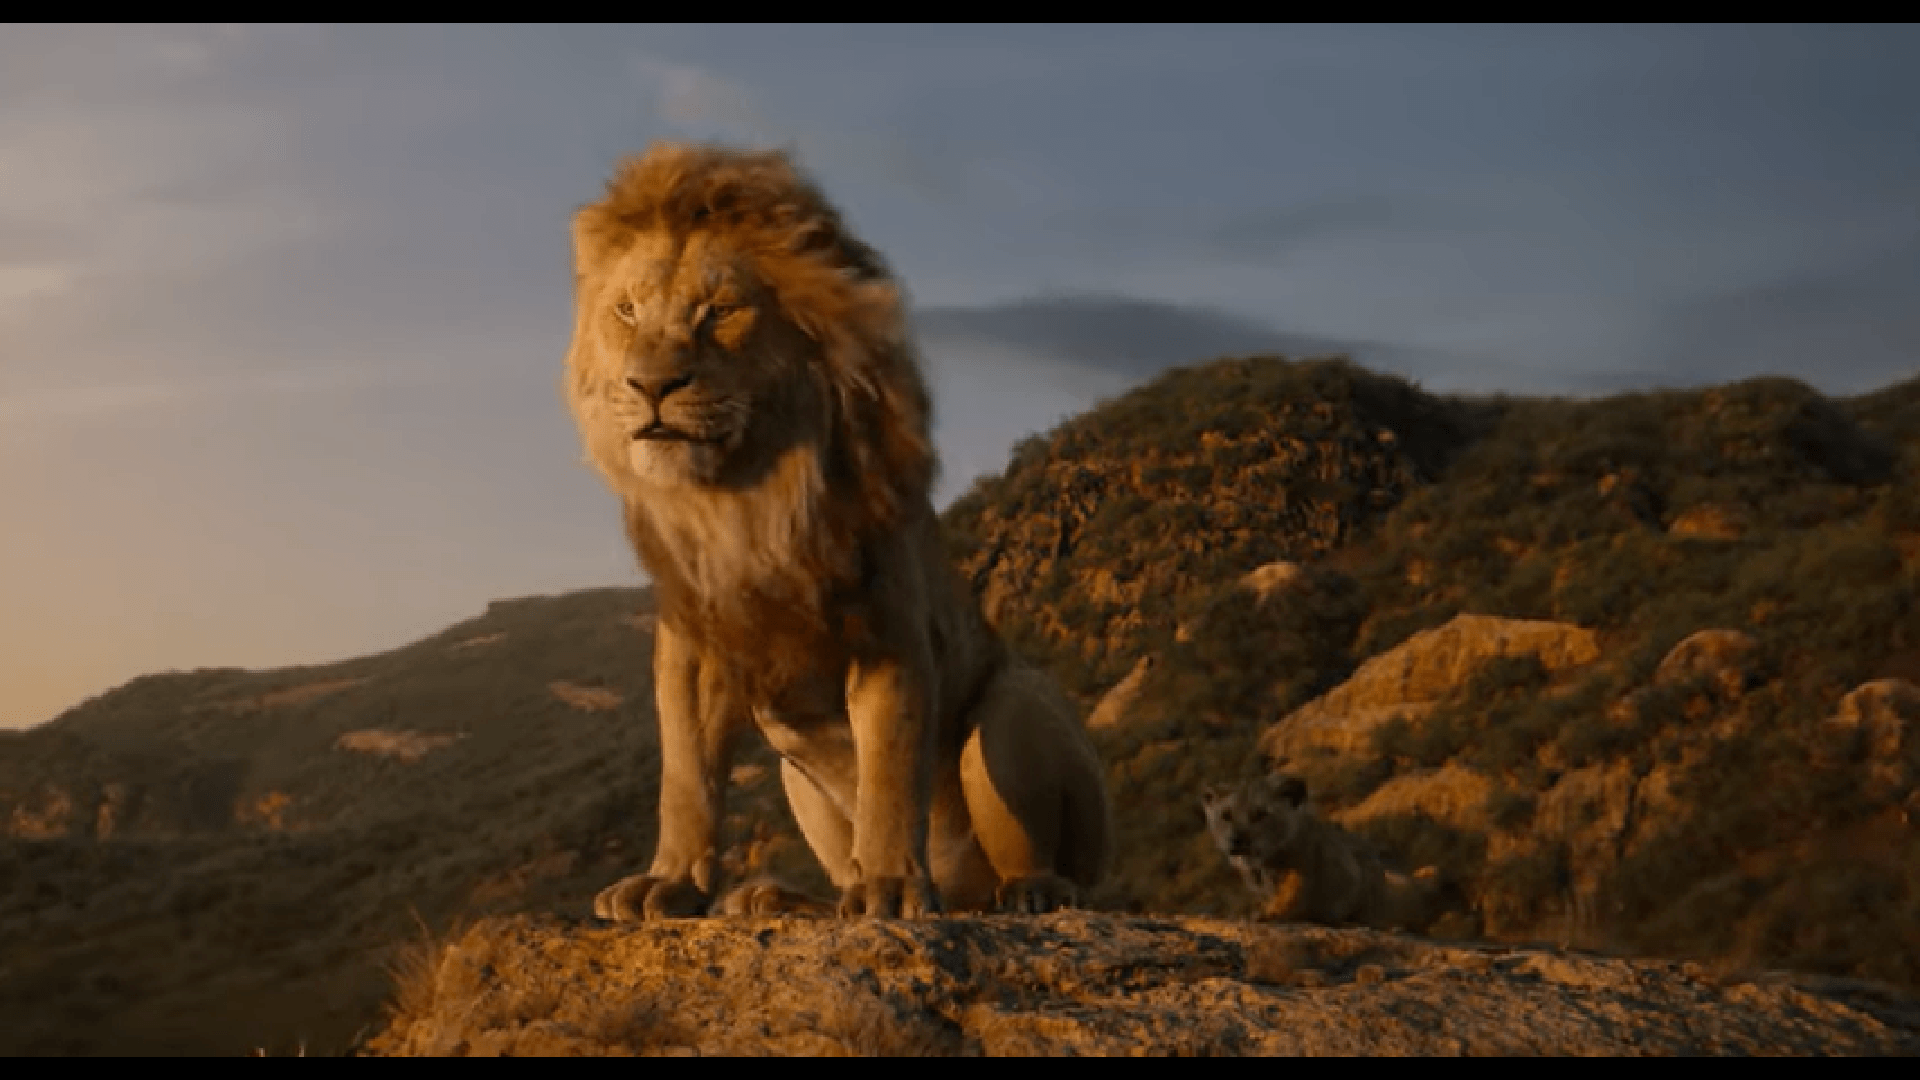 New Lion King trailer shows off the talking animals